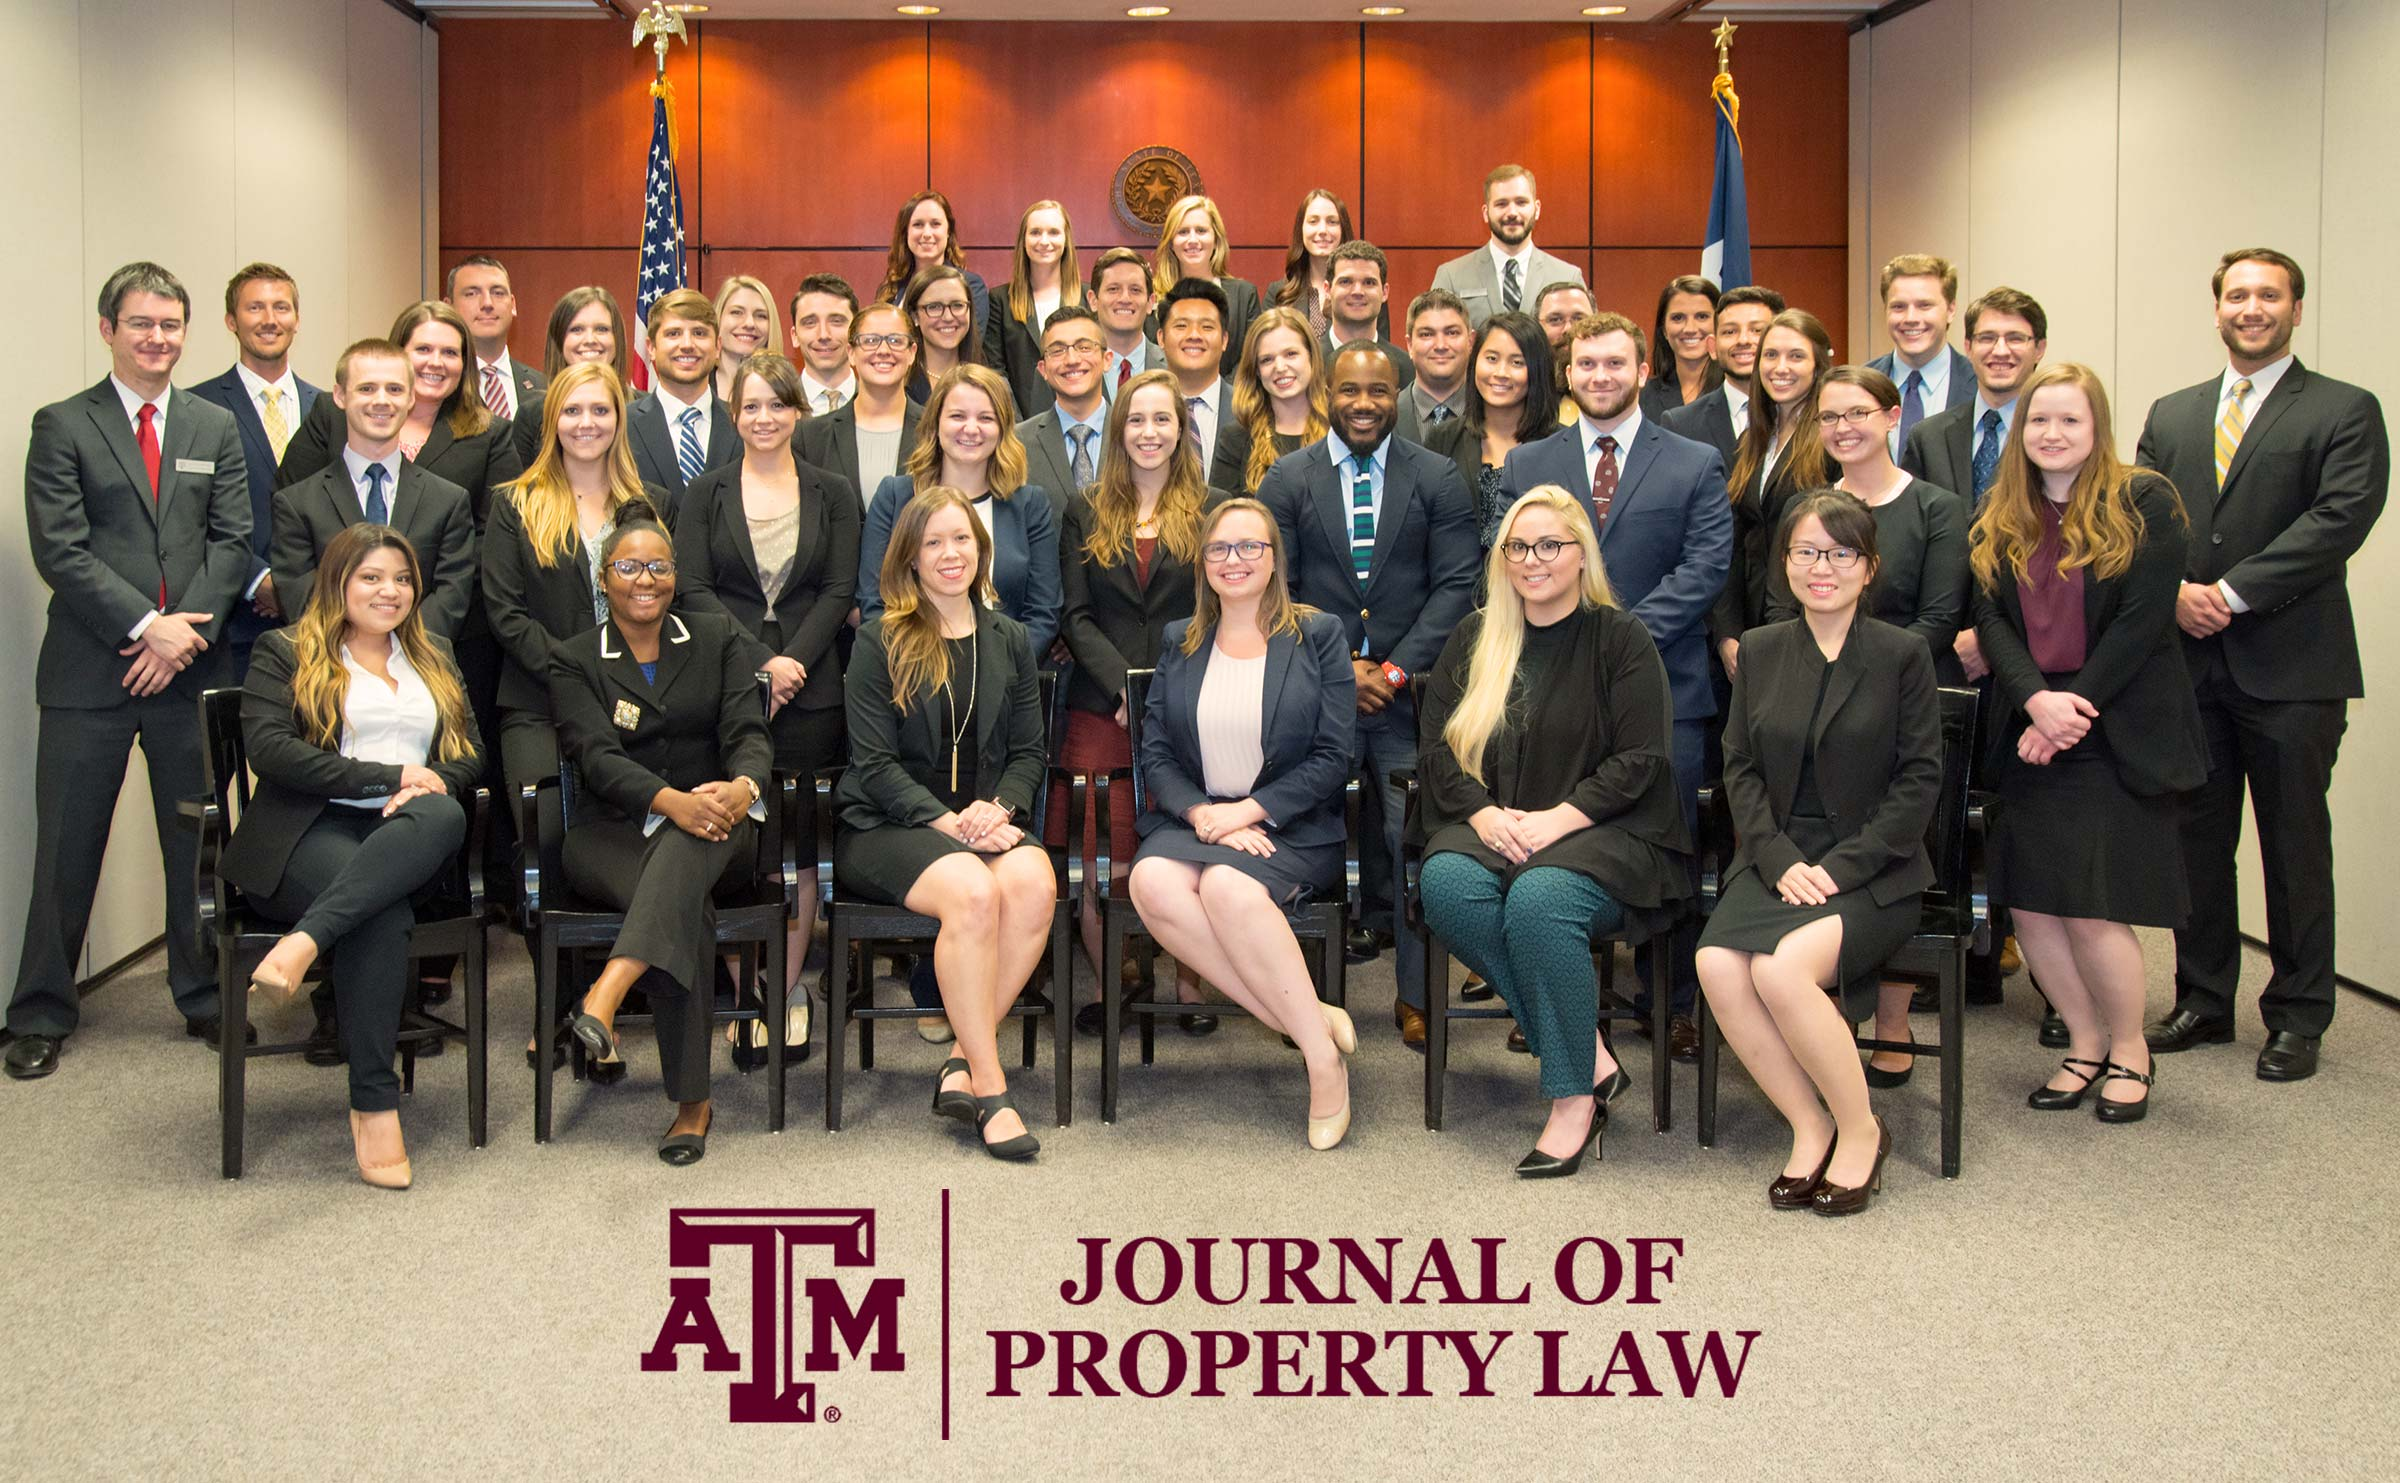 Journal of Property Law full staff 2017